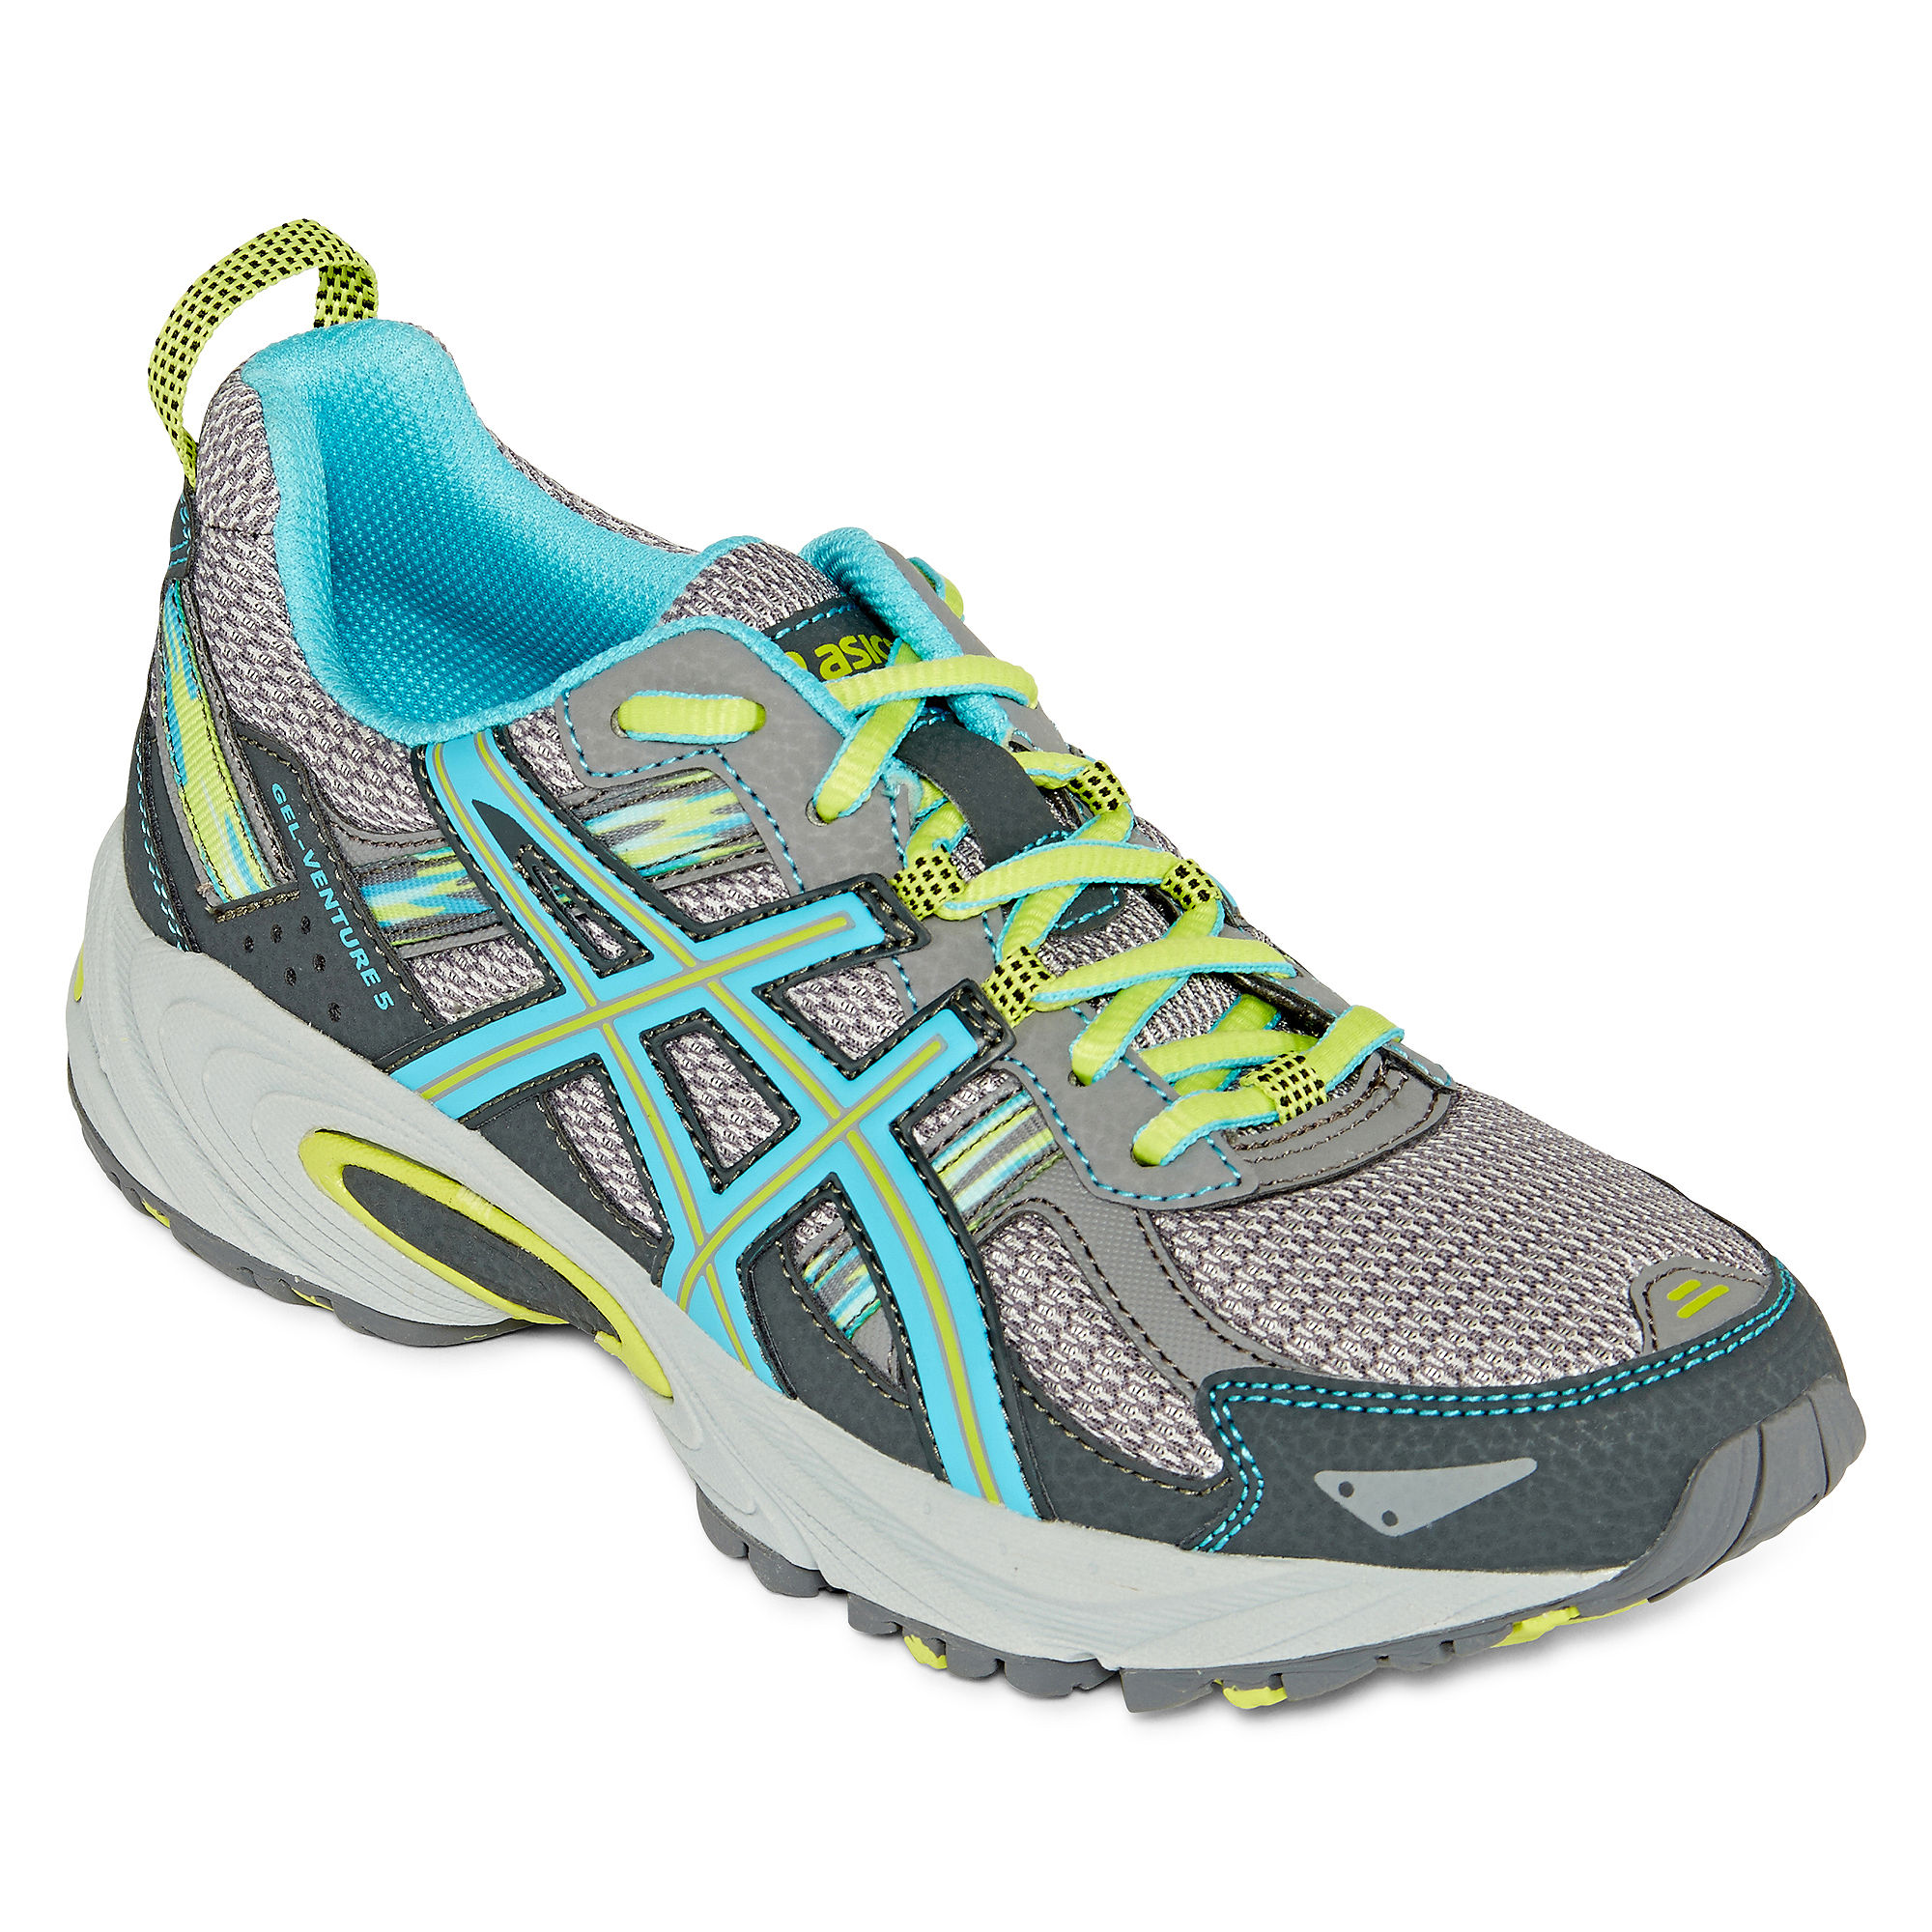 ASICS Venture 5 Womens Running Shoes